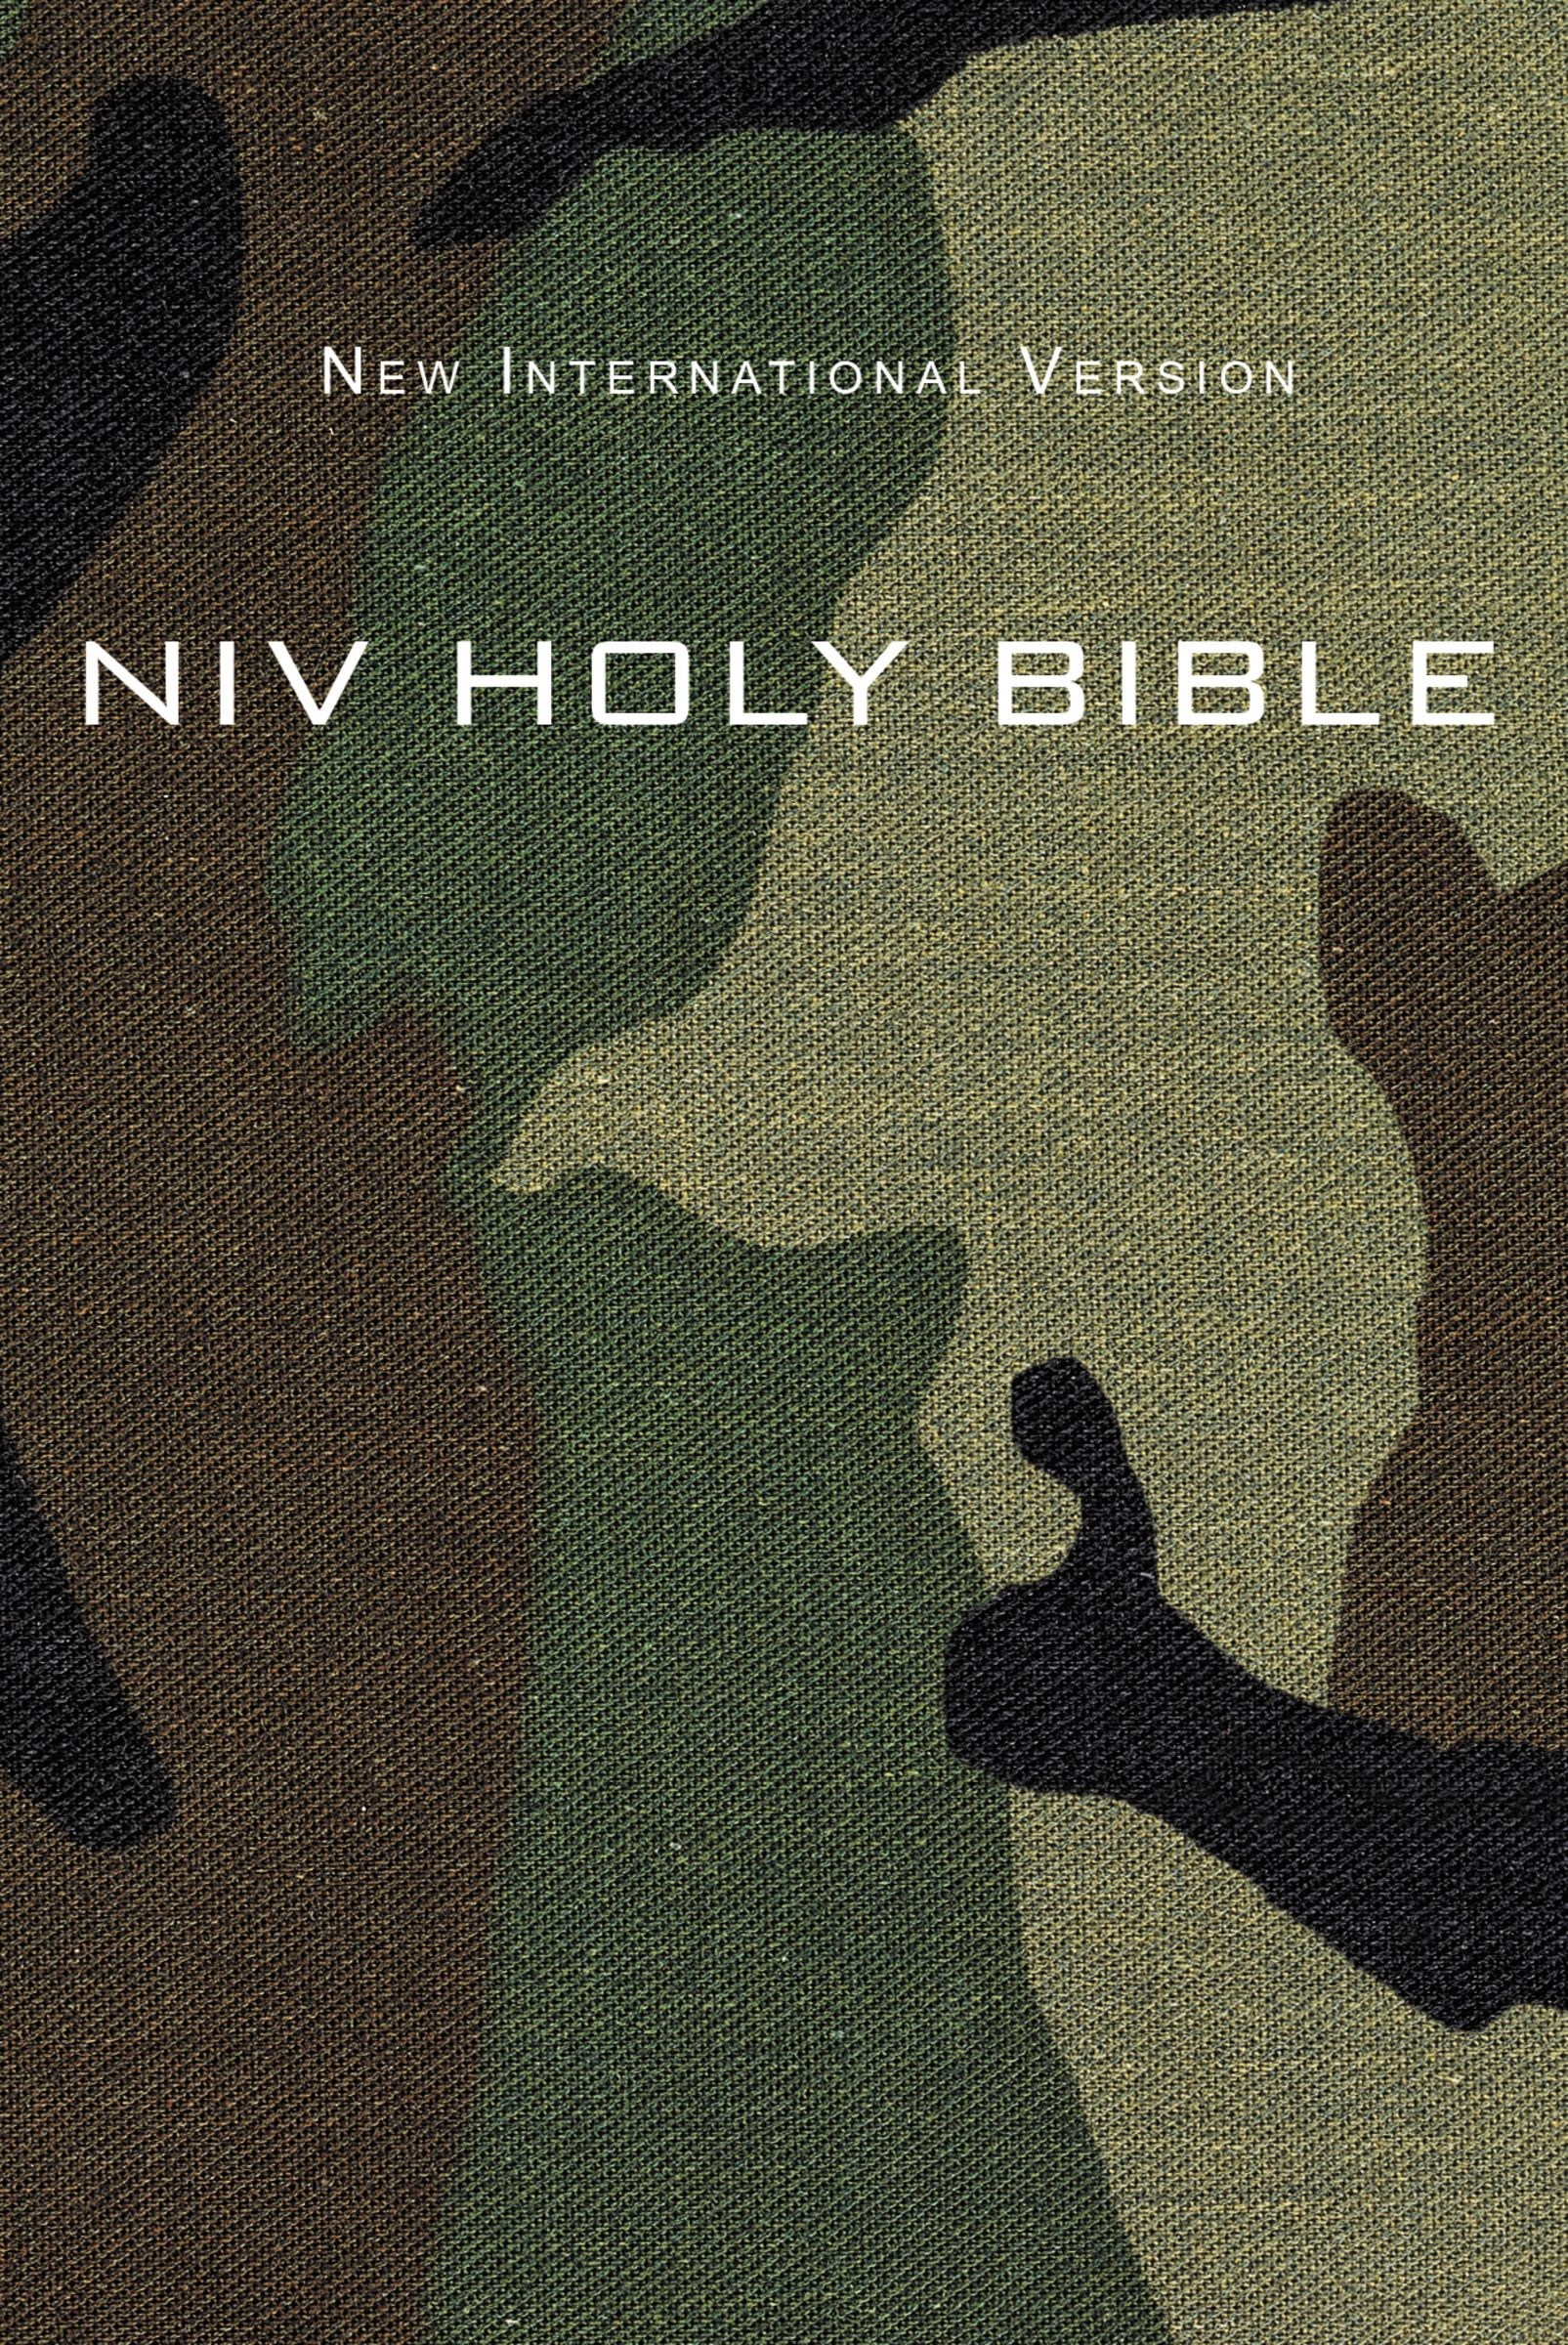 NIV Compact Bible-Green Camouflage Softcover